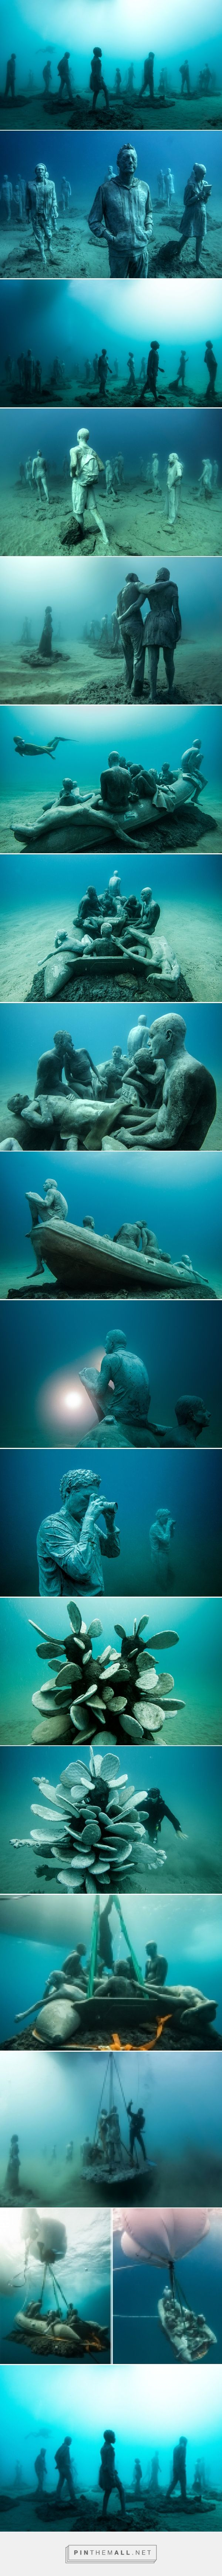 jason decaires taylor submerges underwater museum off the coast of lanzarote, spain - created via https://pinthemall.net